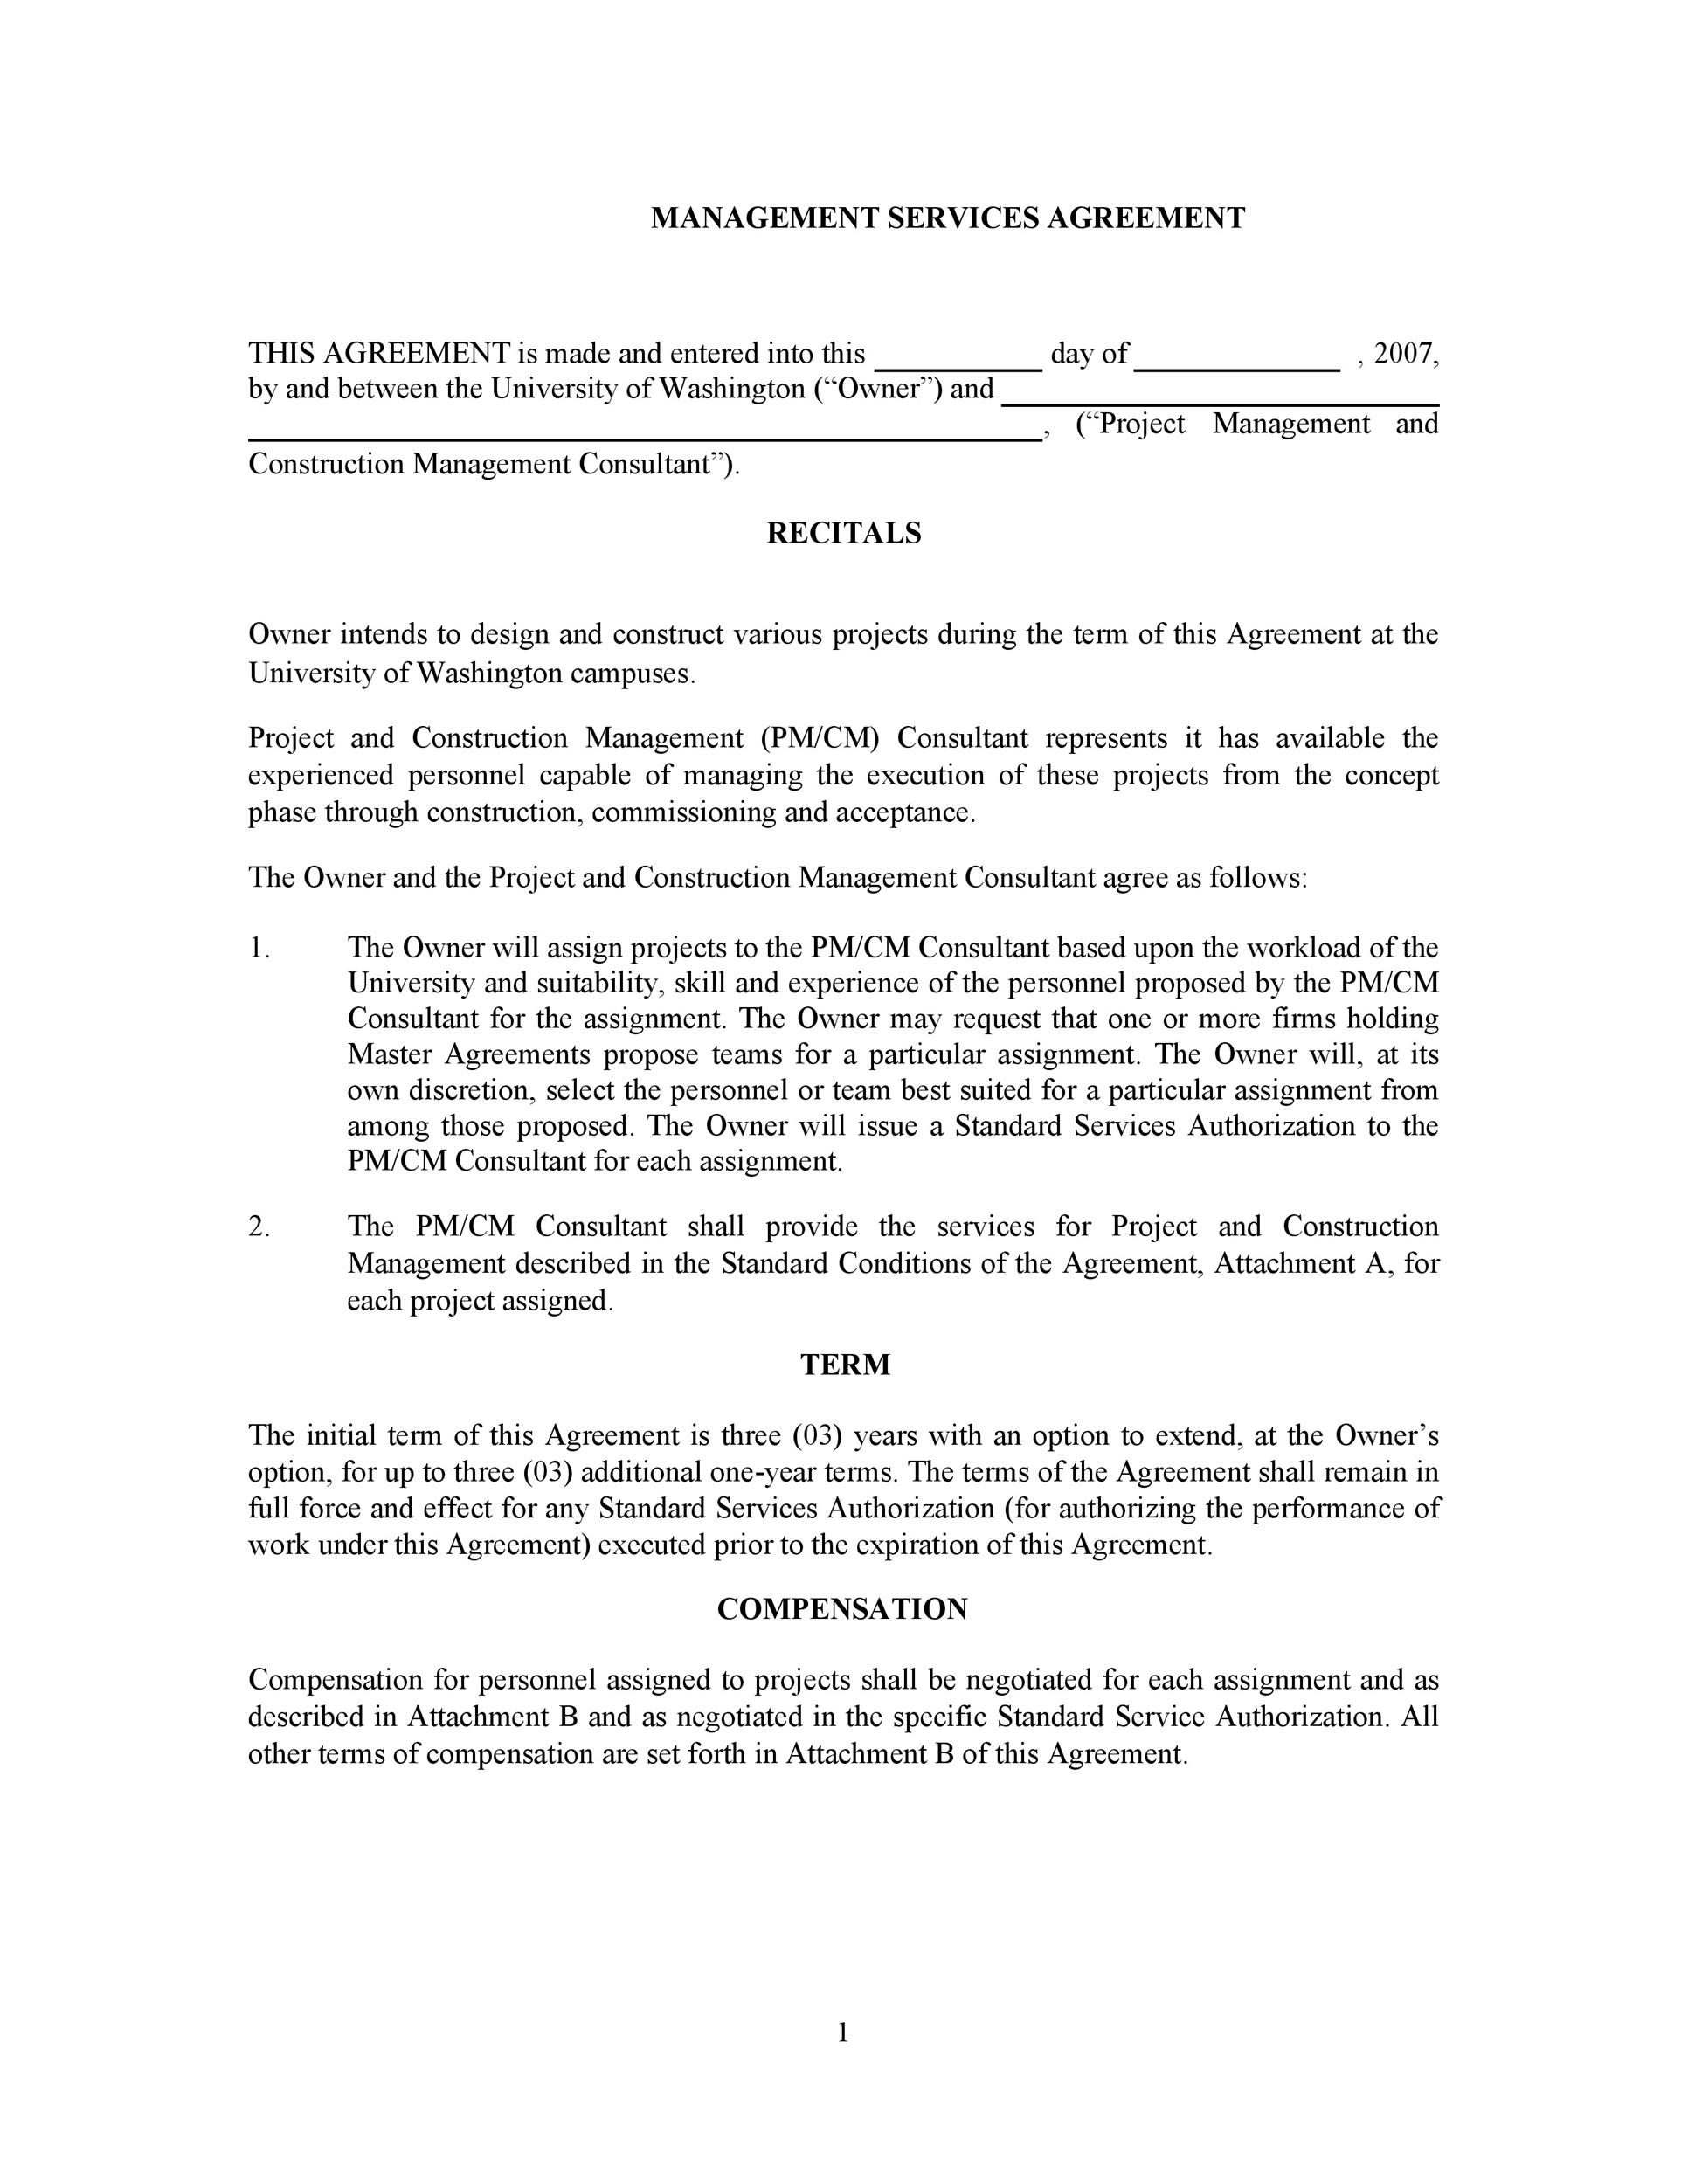 Construction Management Agreement. Construction Management